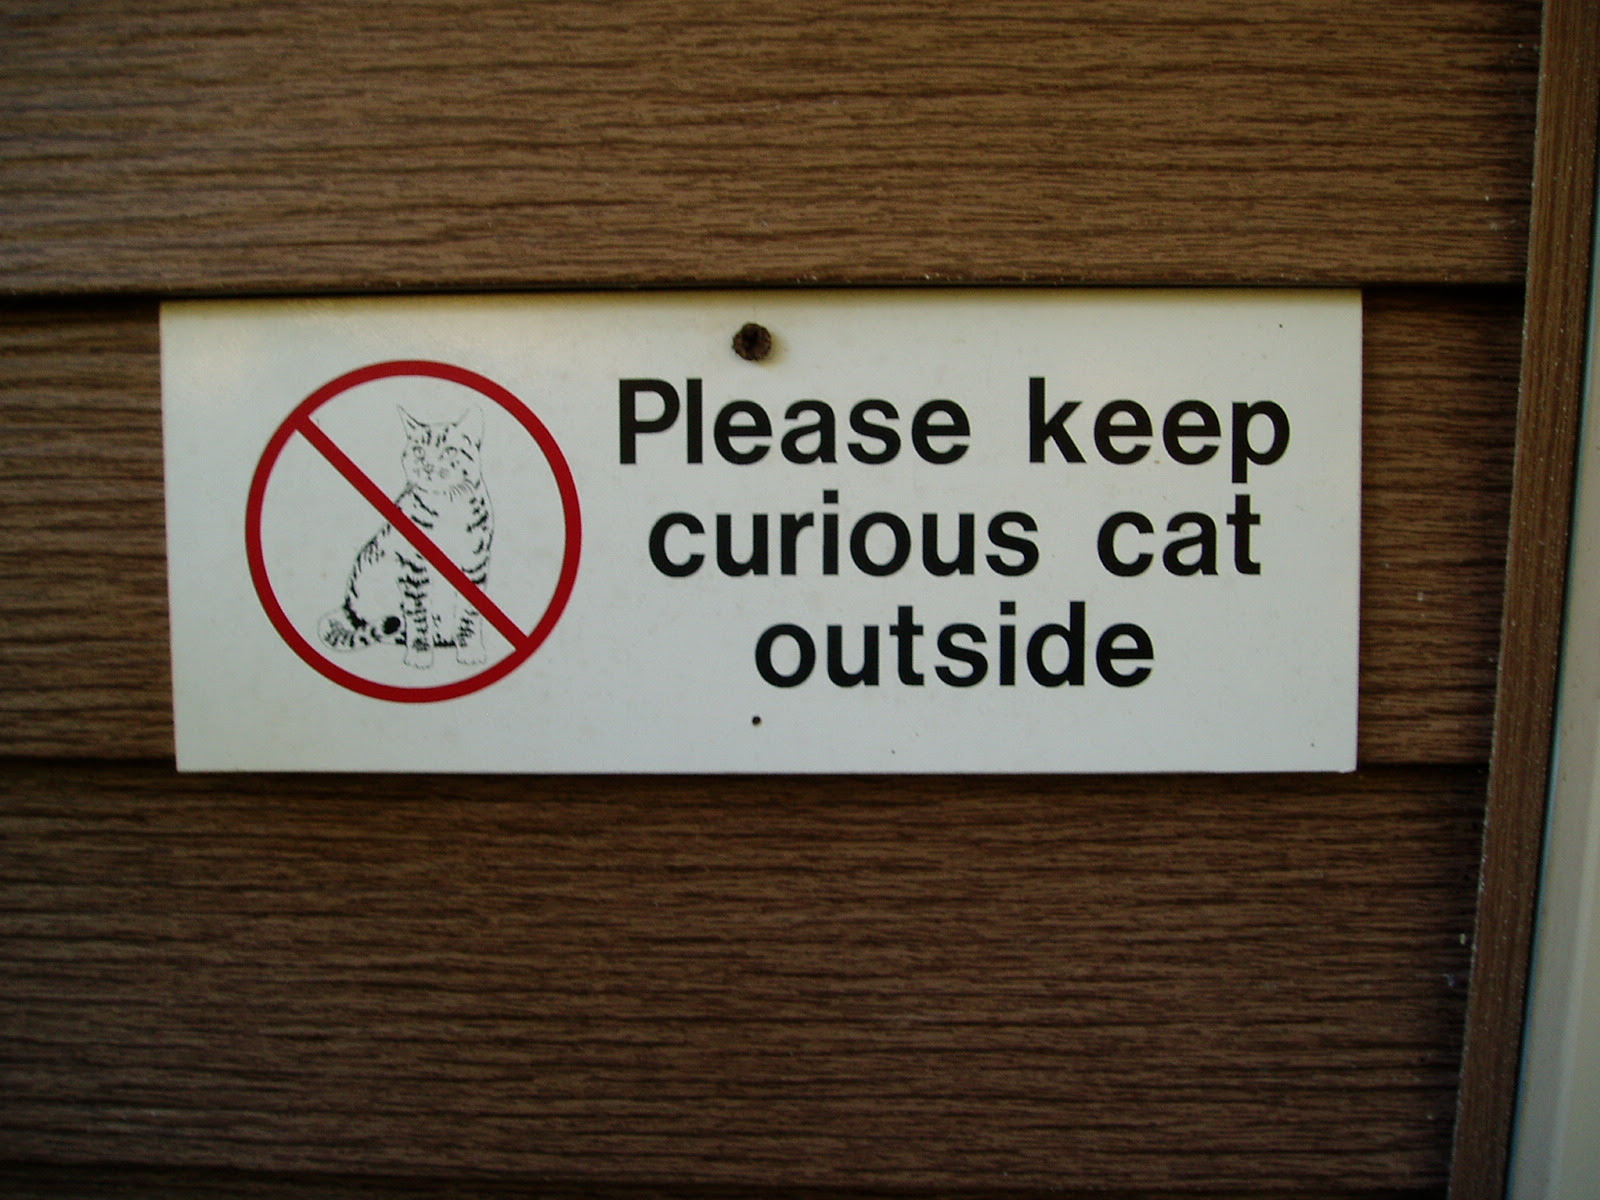 Please keep curious cat outside